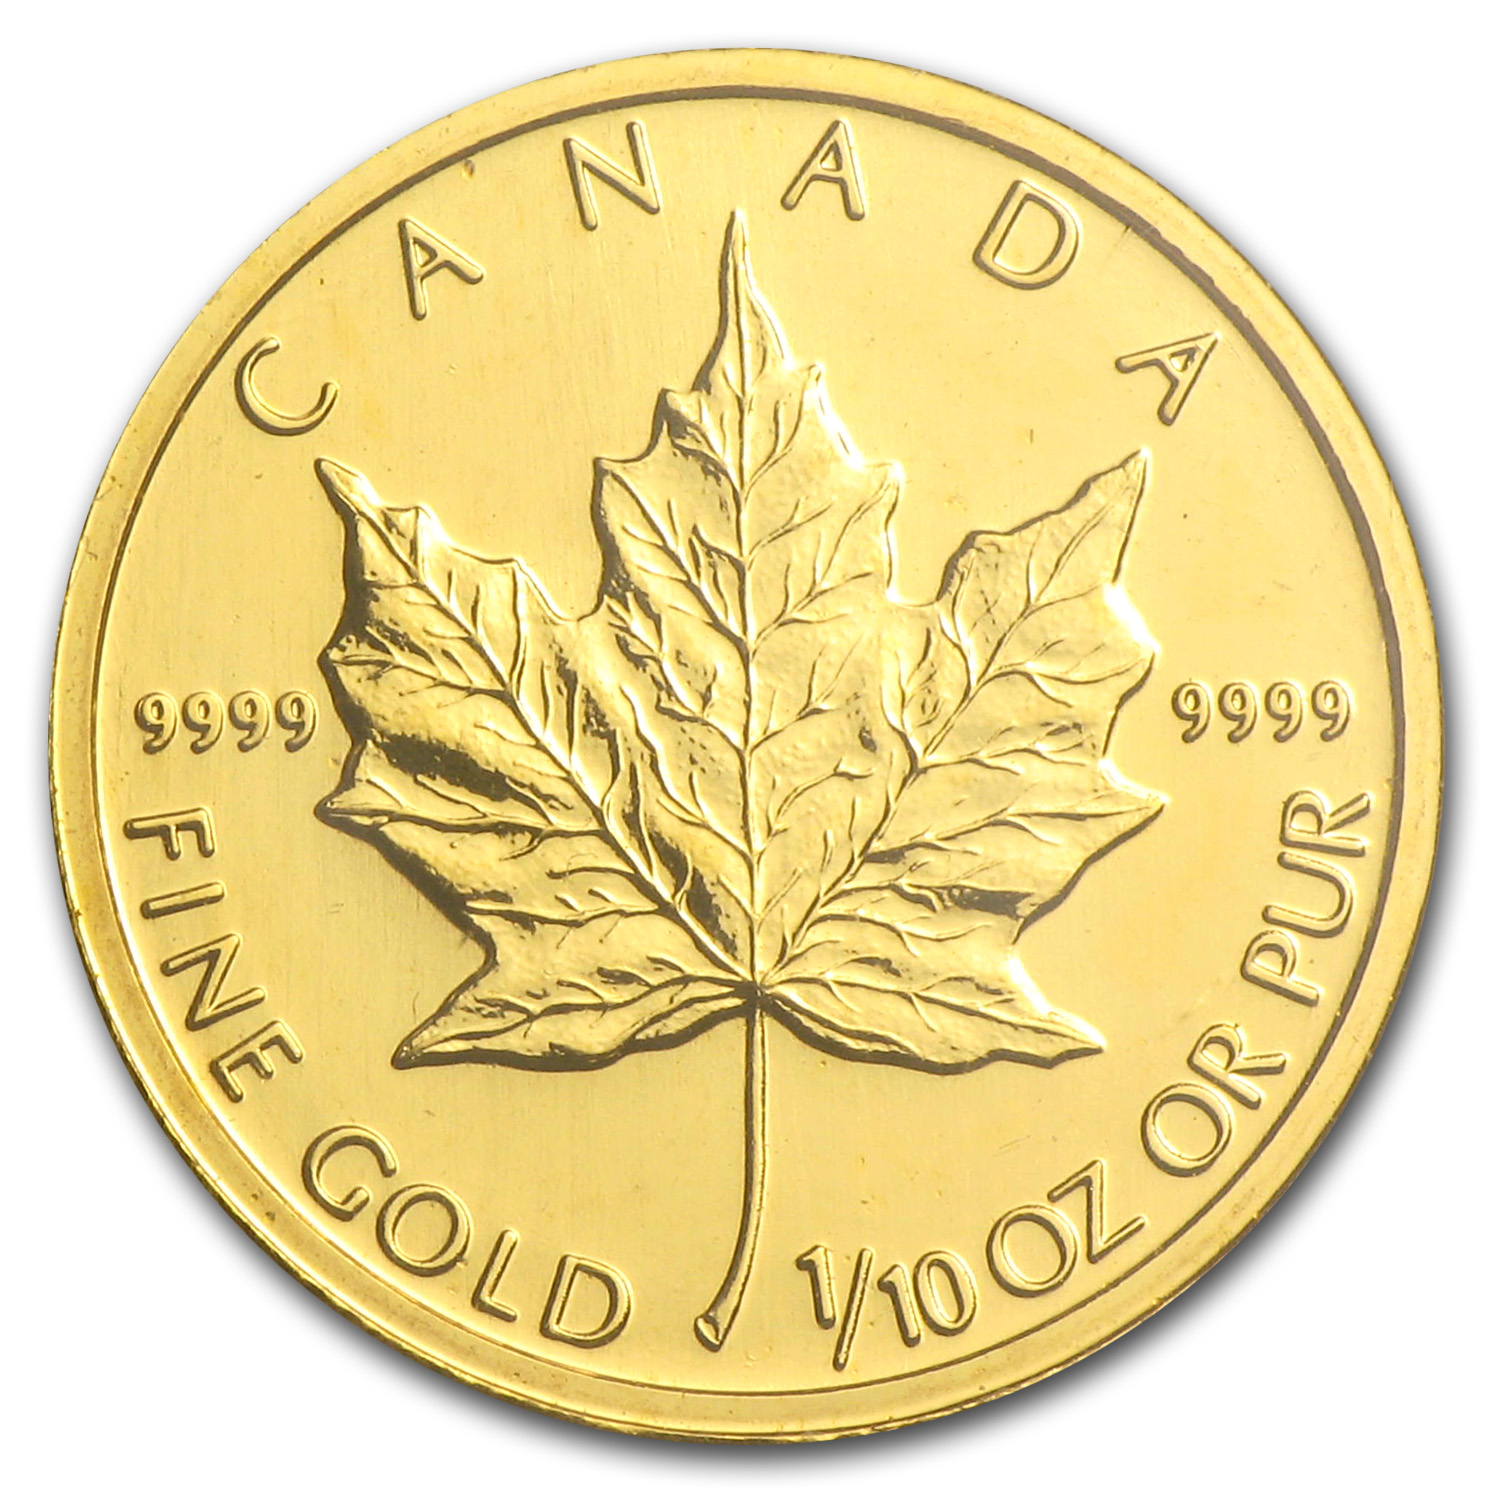 2002 Canada 1/10 oz Gold Maple Leaf BU